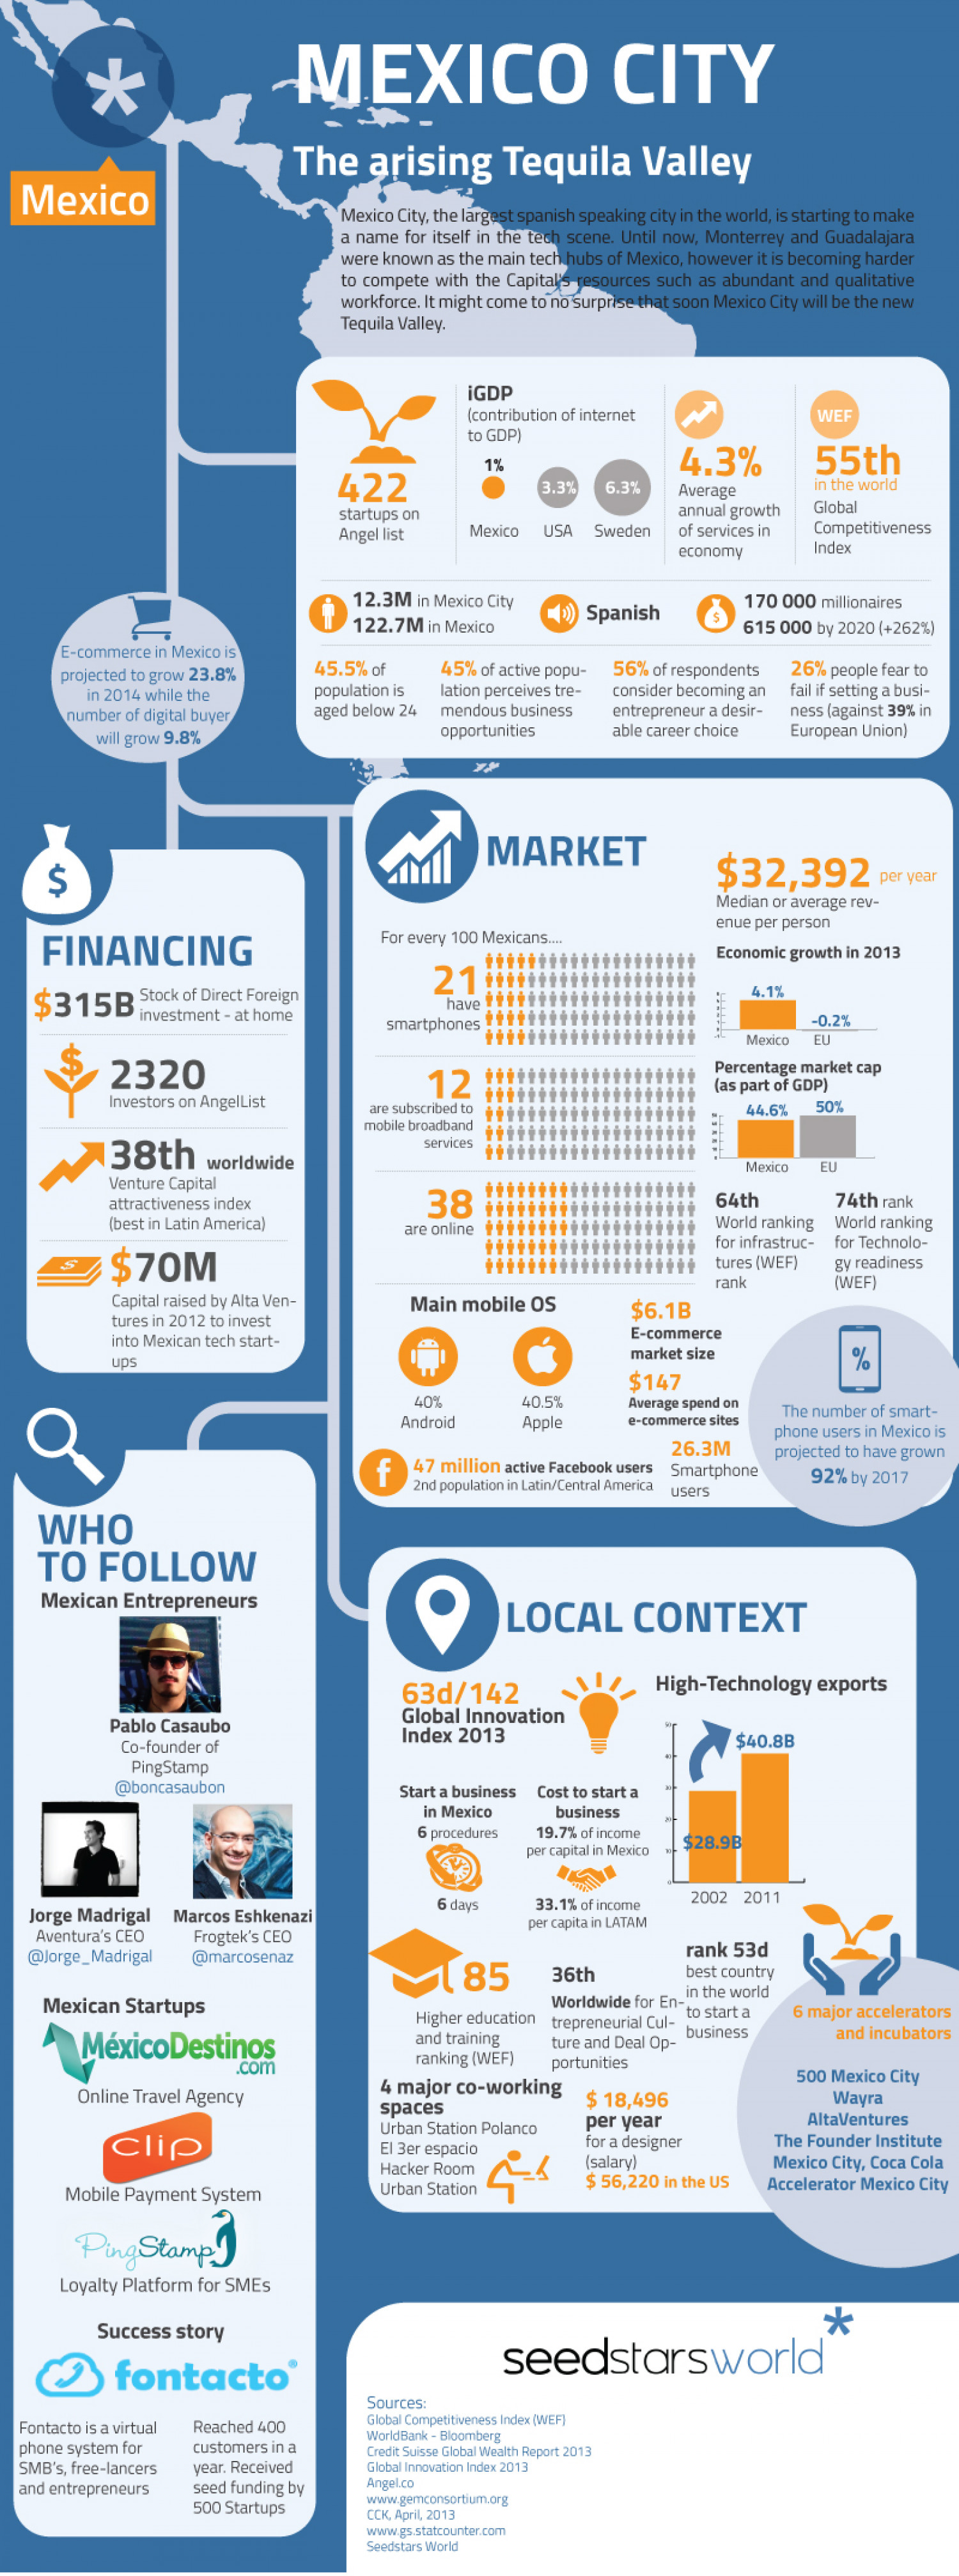 Mexico City - The arising Tequila Valley Infographic